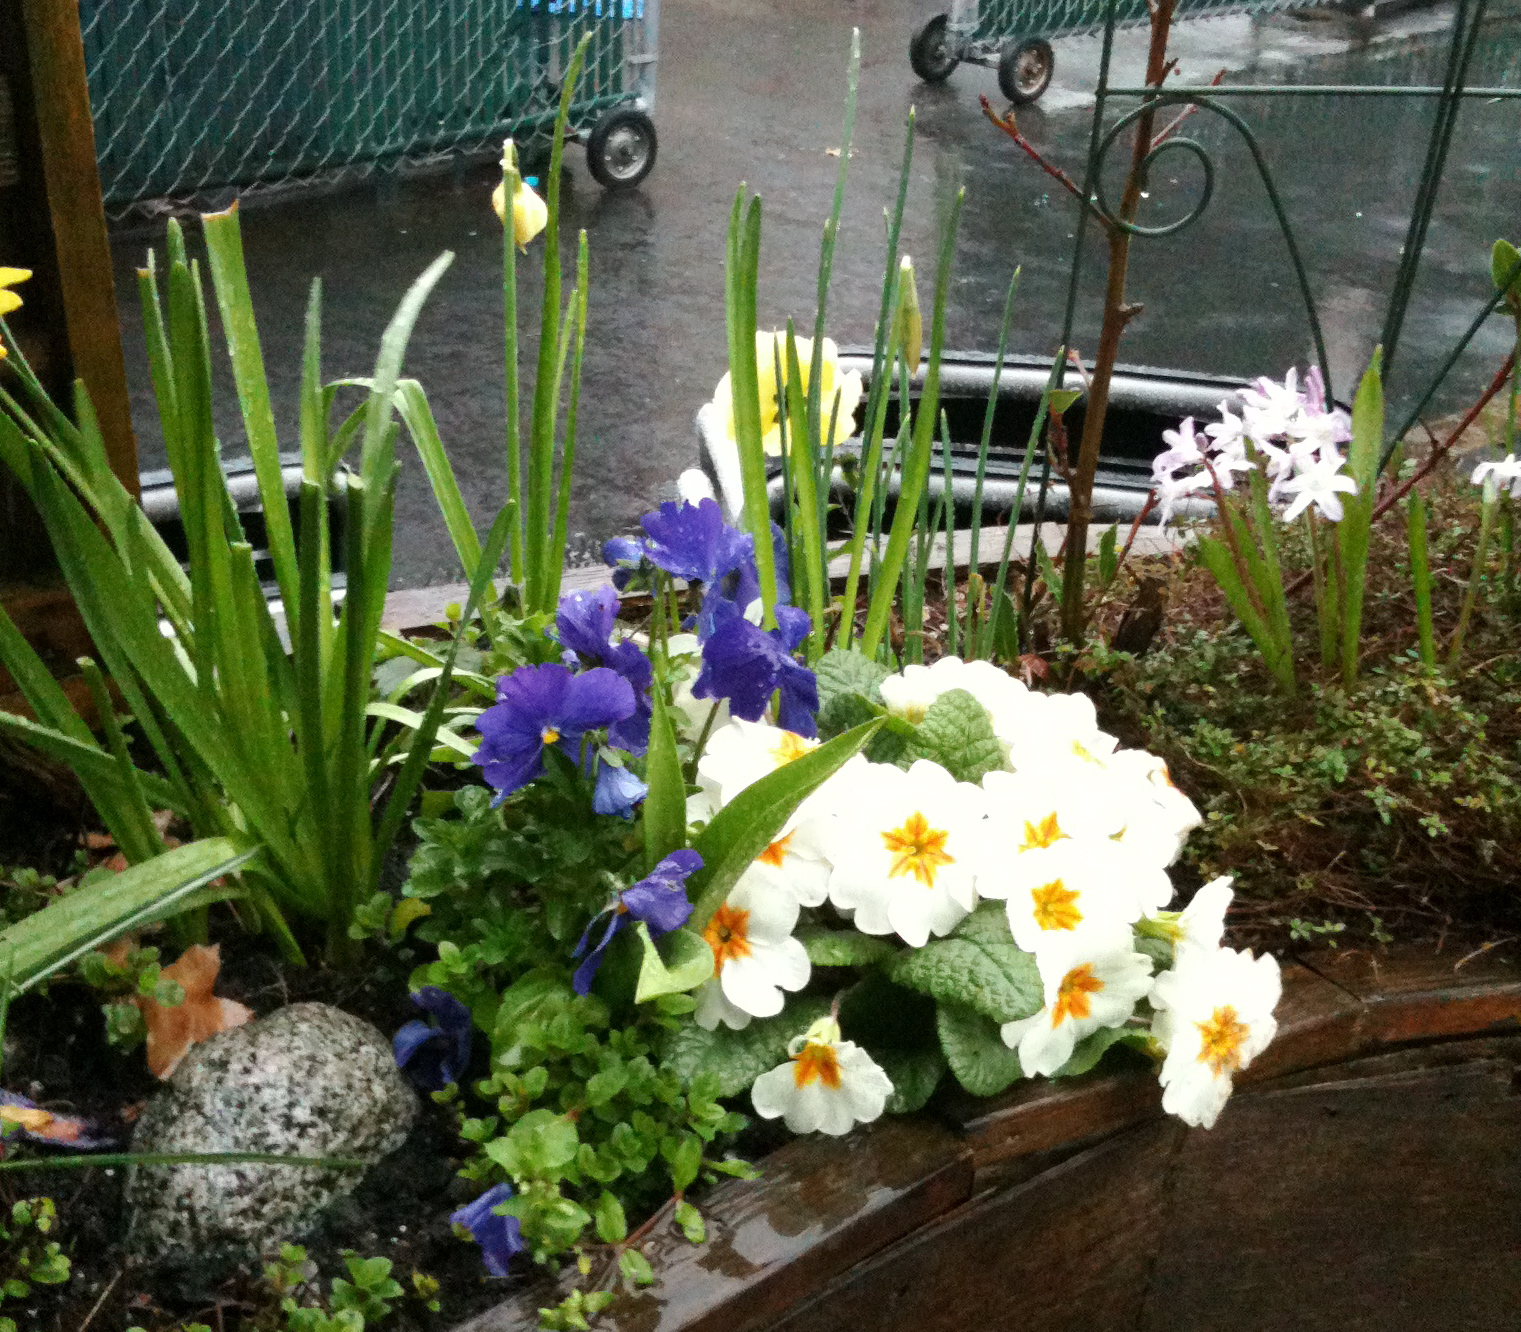 Small space gardens nest and sparkle - How to create a garden in a small space image ...